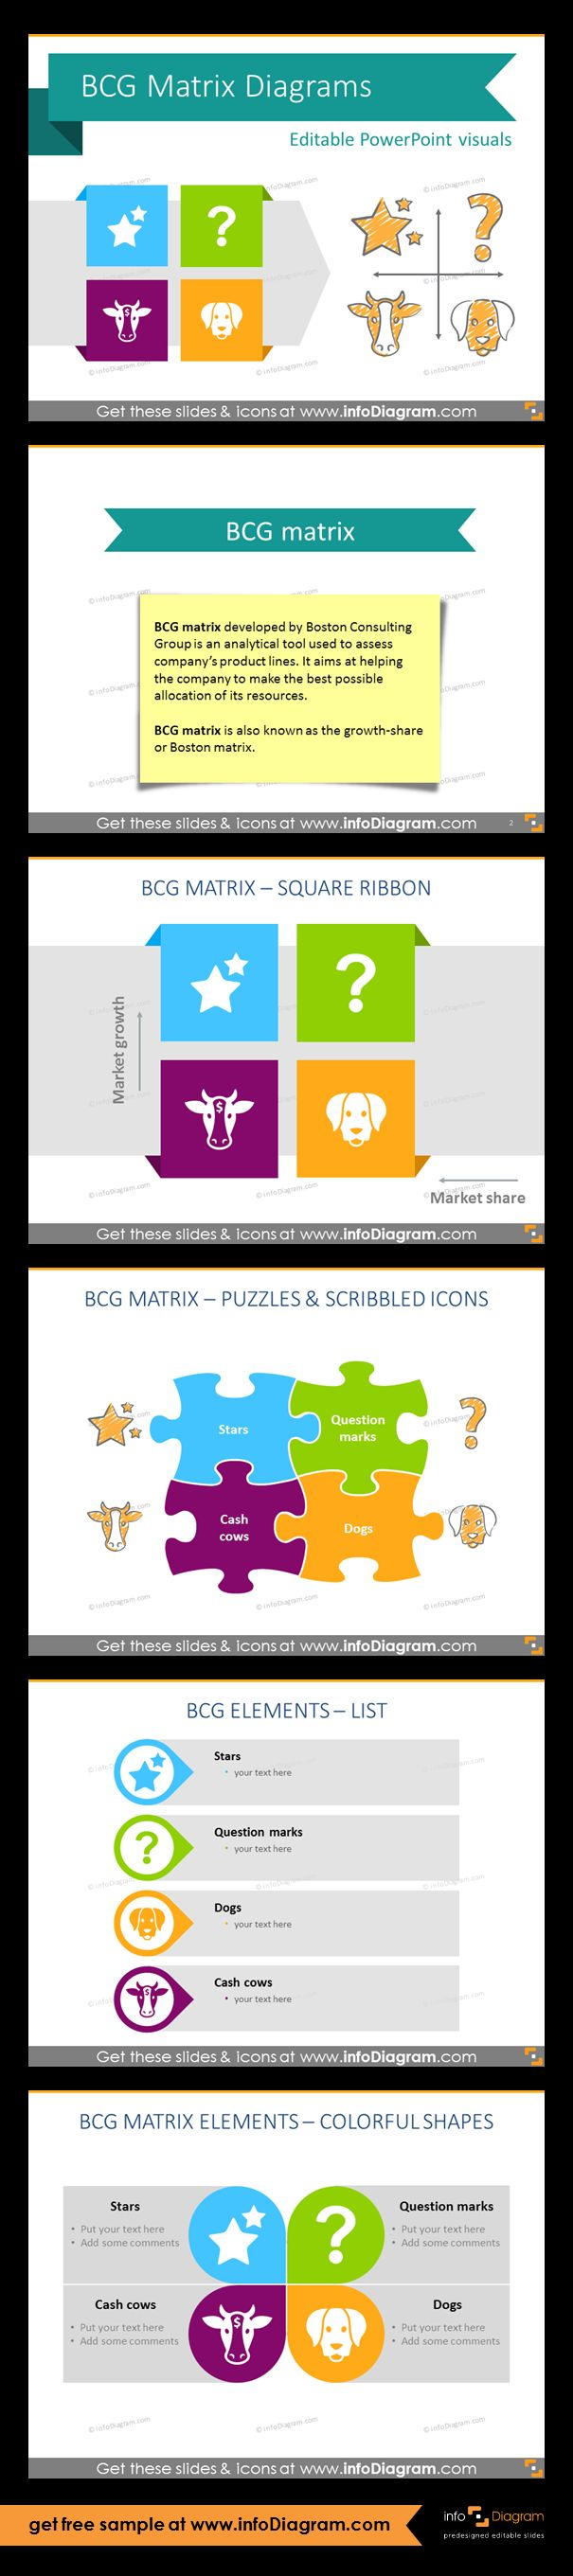 Collection of BCG diagrams as pre-designed PowerPoint slides. Set of various diagrams representing four distinct product groups: Stars, Cash Cows, Question Marks and Dog. Definition of BCG matrix, its aims. Scribbled icons and square ribbon, BCG matrix showed as a puzzle, list of BCG elements, colourful overview of the growth-share matrix. Presentation template suitable for marketing and business development presentations. Fully editable style. Size and colors easy to adjust using PowerPoint…